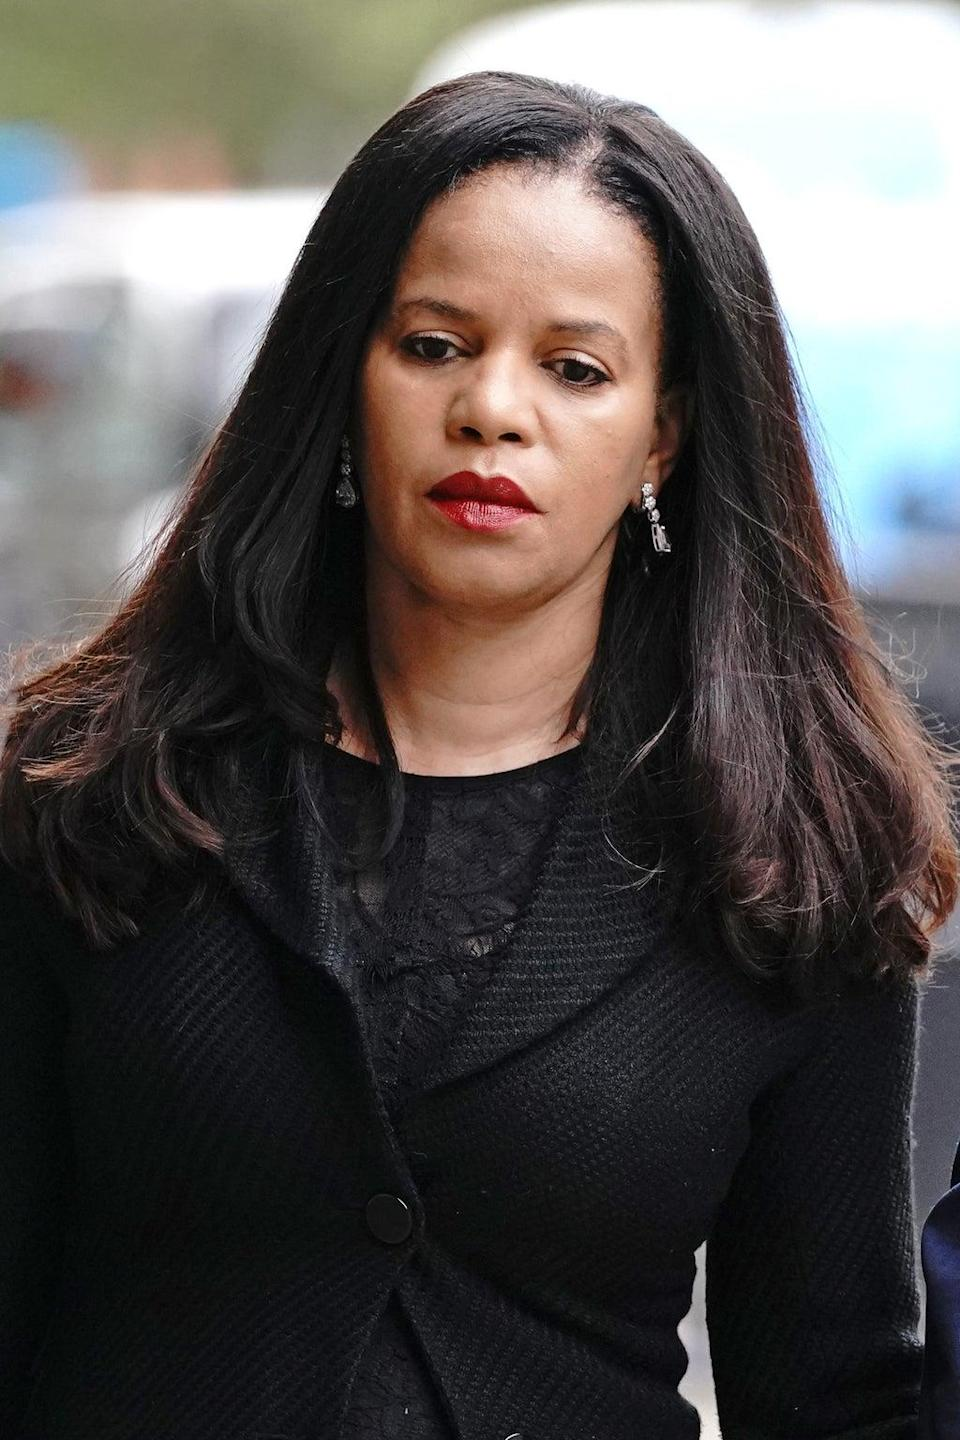 MP Claudia Webbe arrives at Westminster Magistrates' Court (.Jonathan Brady/PA) (PA Wire)